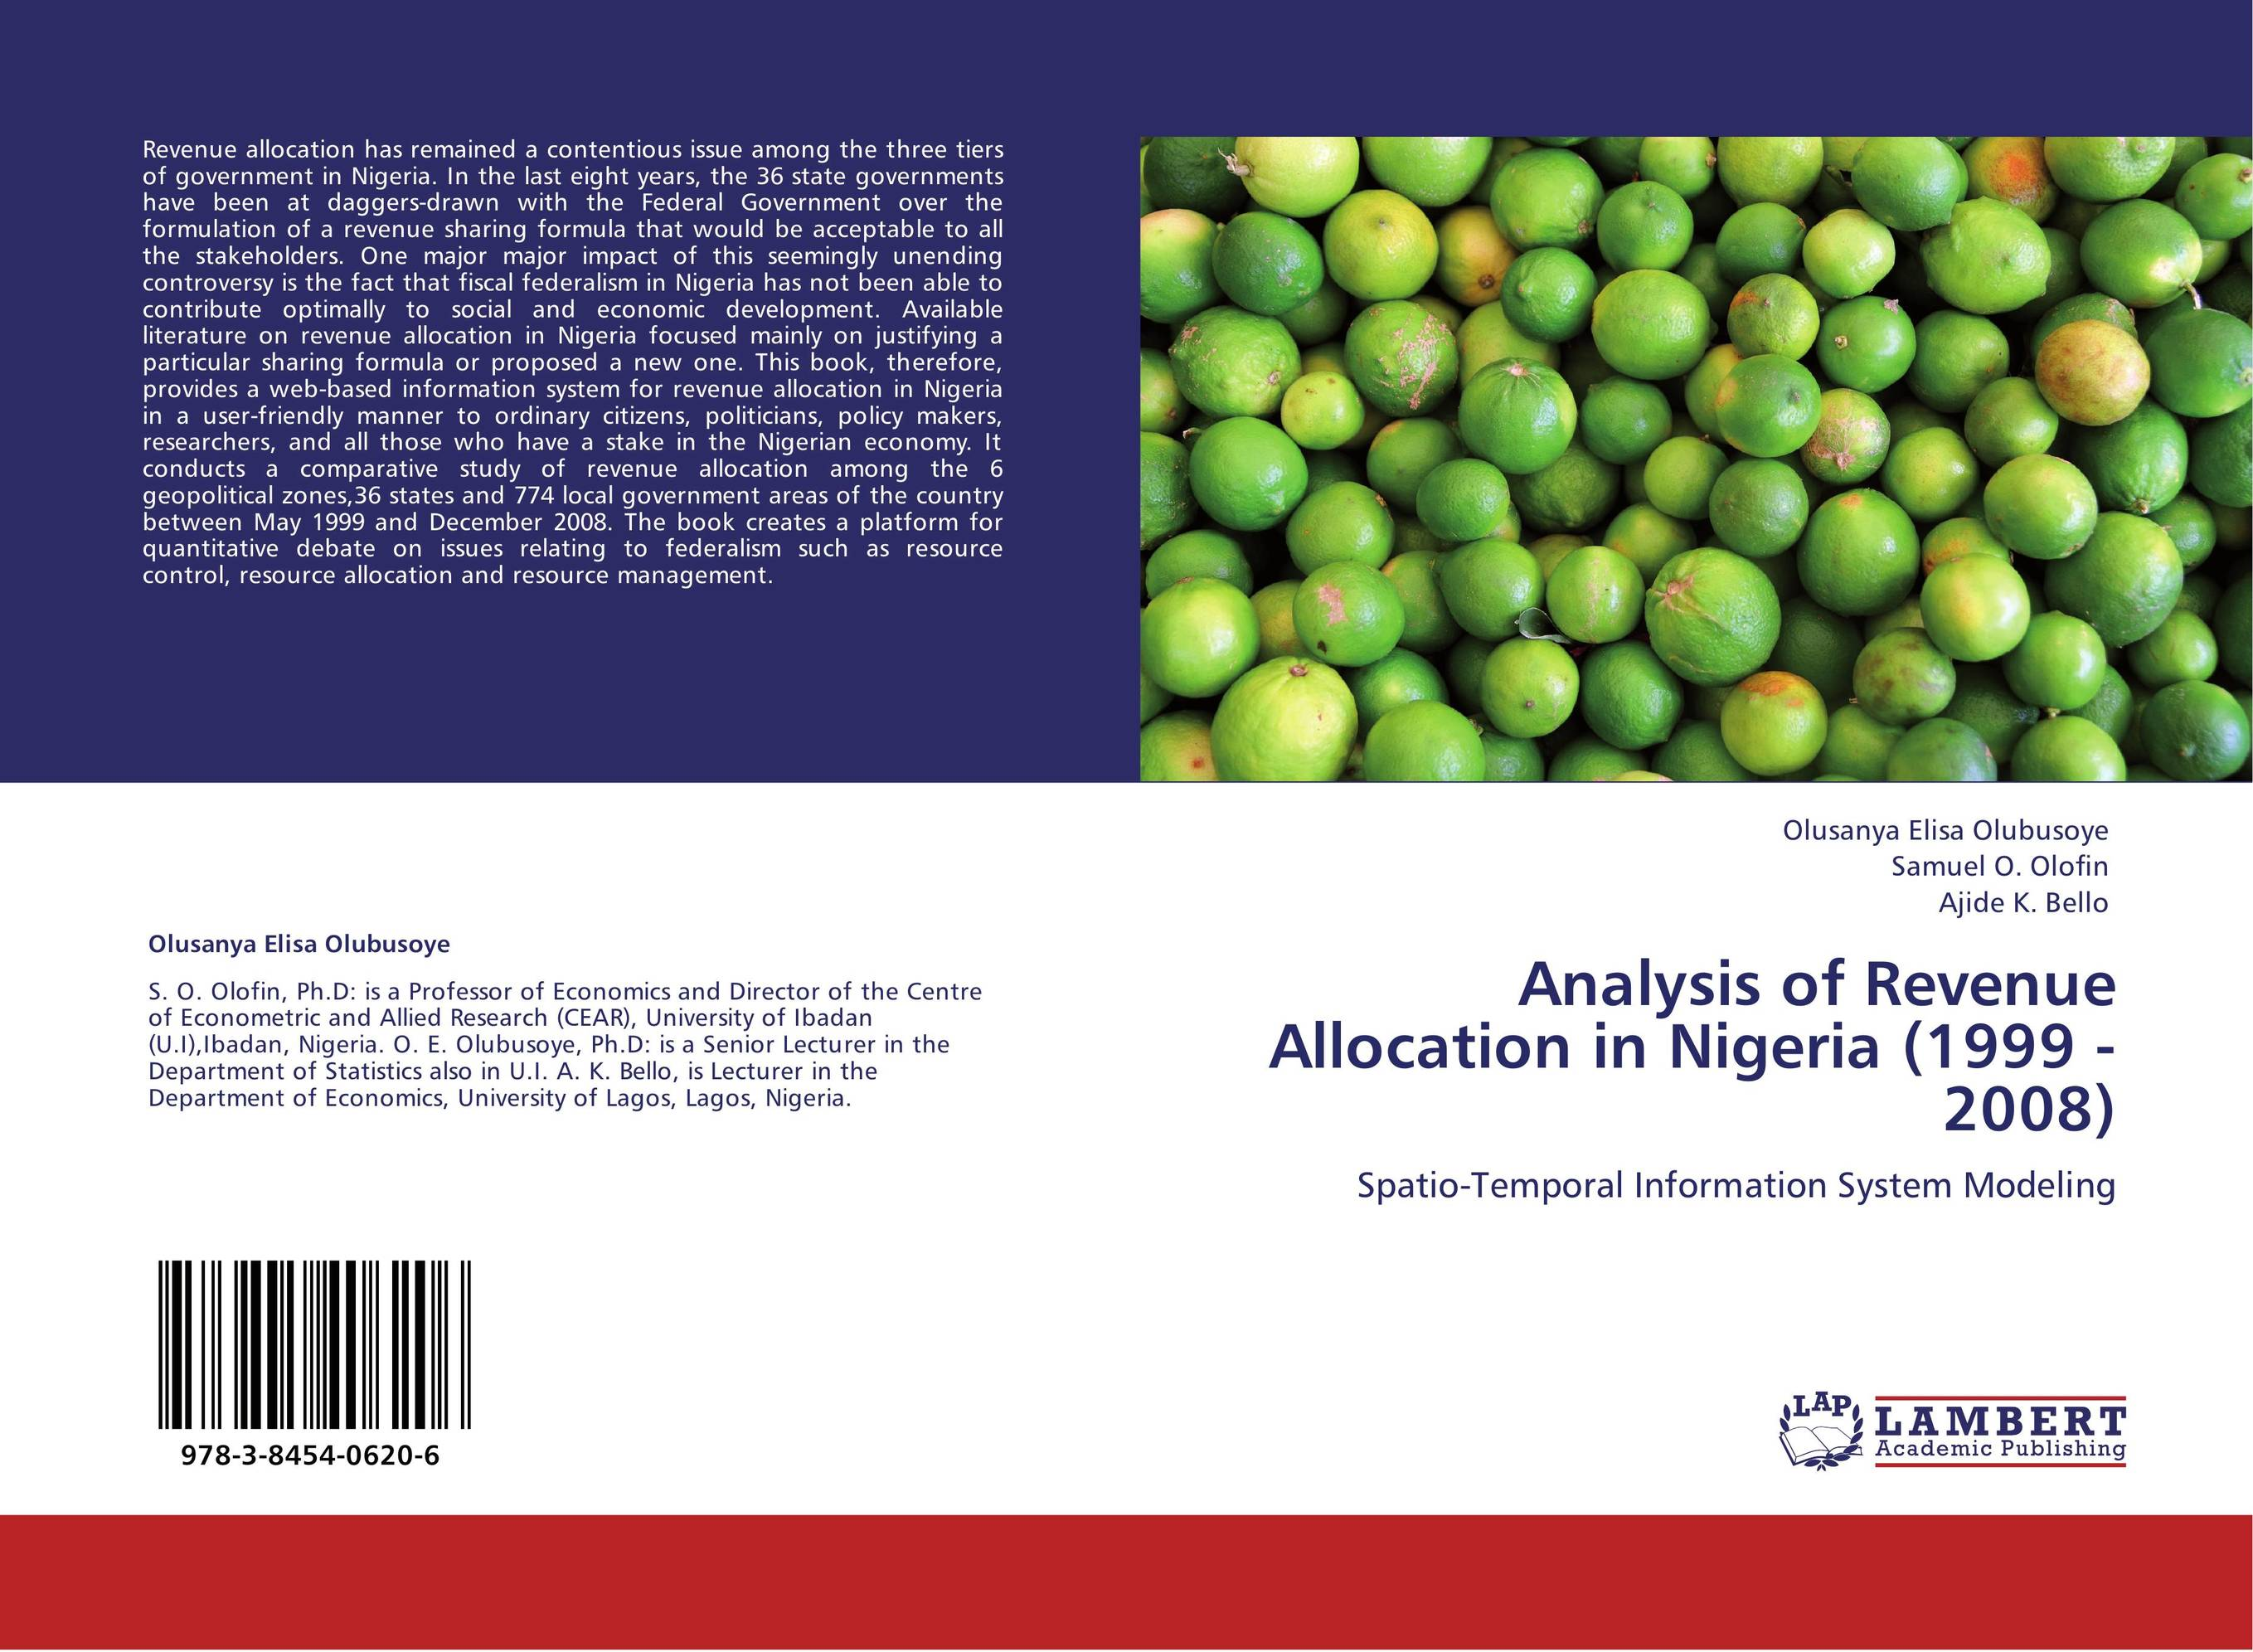 problem confronting nigeria revenue allocation Federalism and ethnic conflict in nigeria about the budget and revenue allocation, the mode of sharing nigeria's confronting arguments for and.